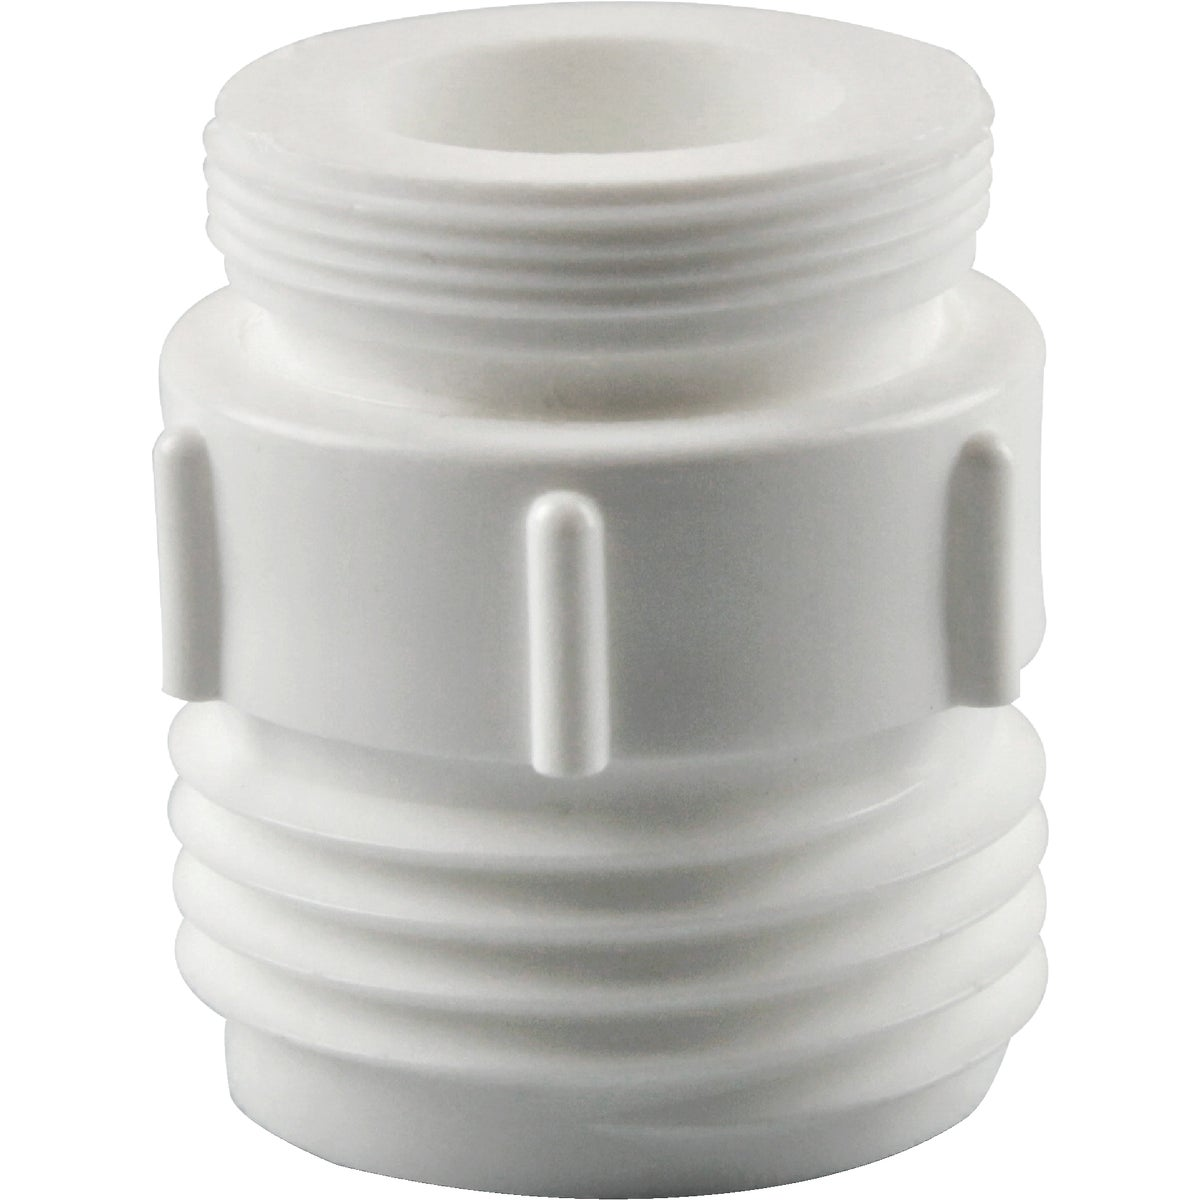 PLASTIC FAUCET ADAPTER - 99 by G T Water Prod